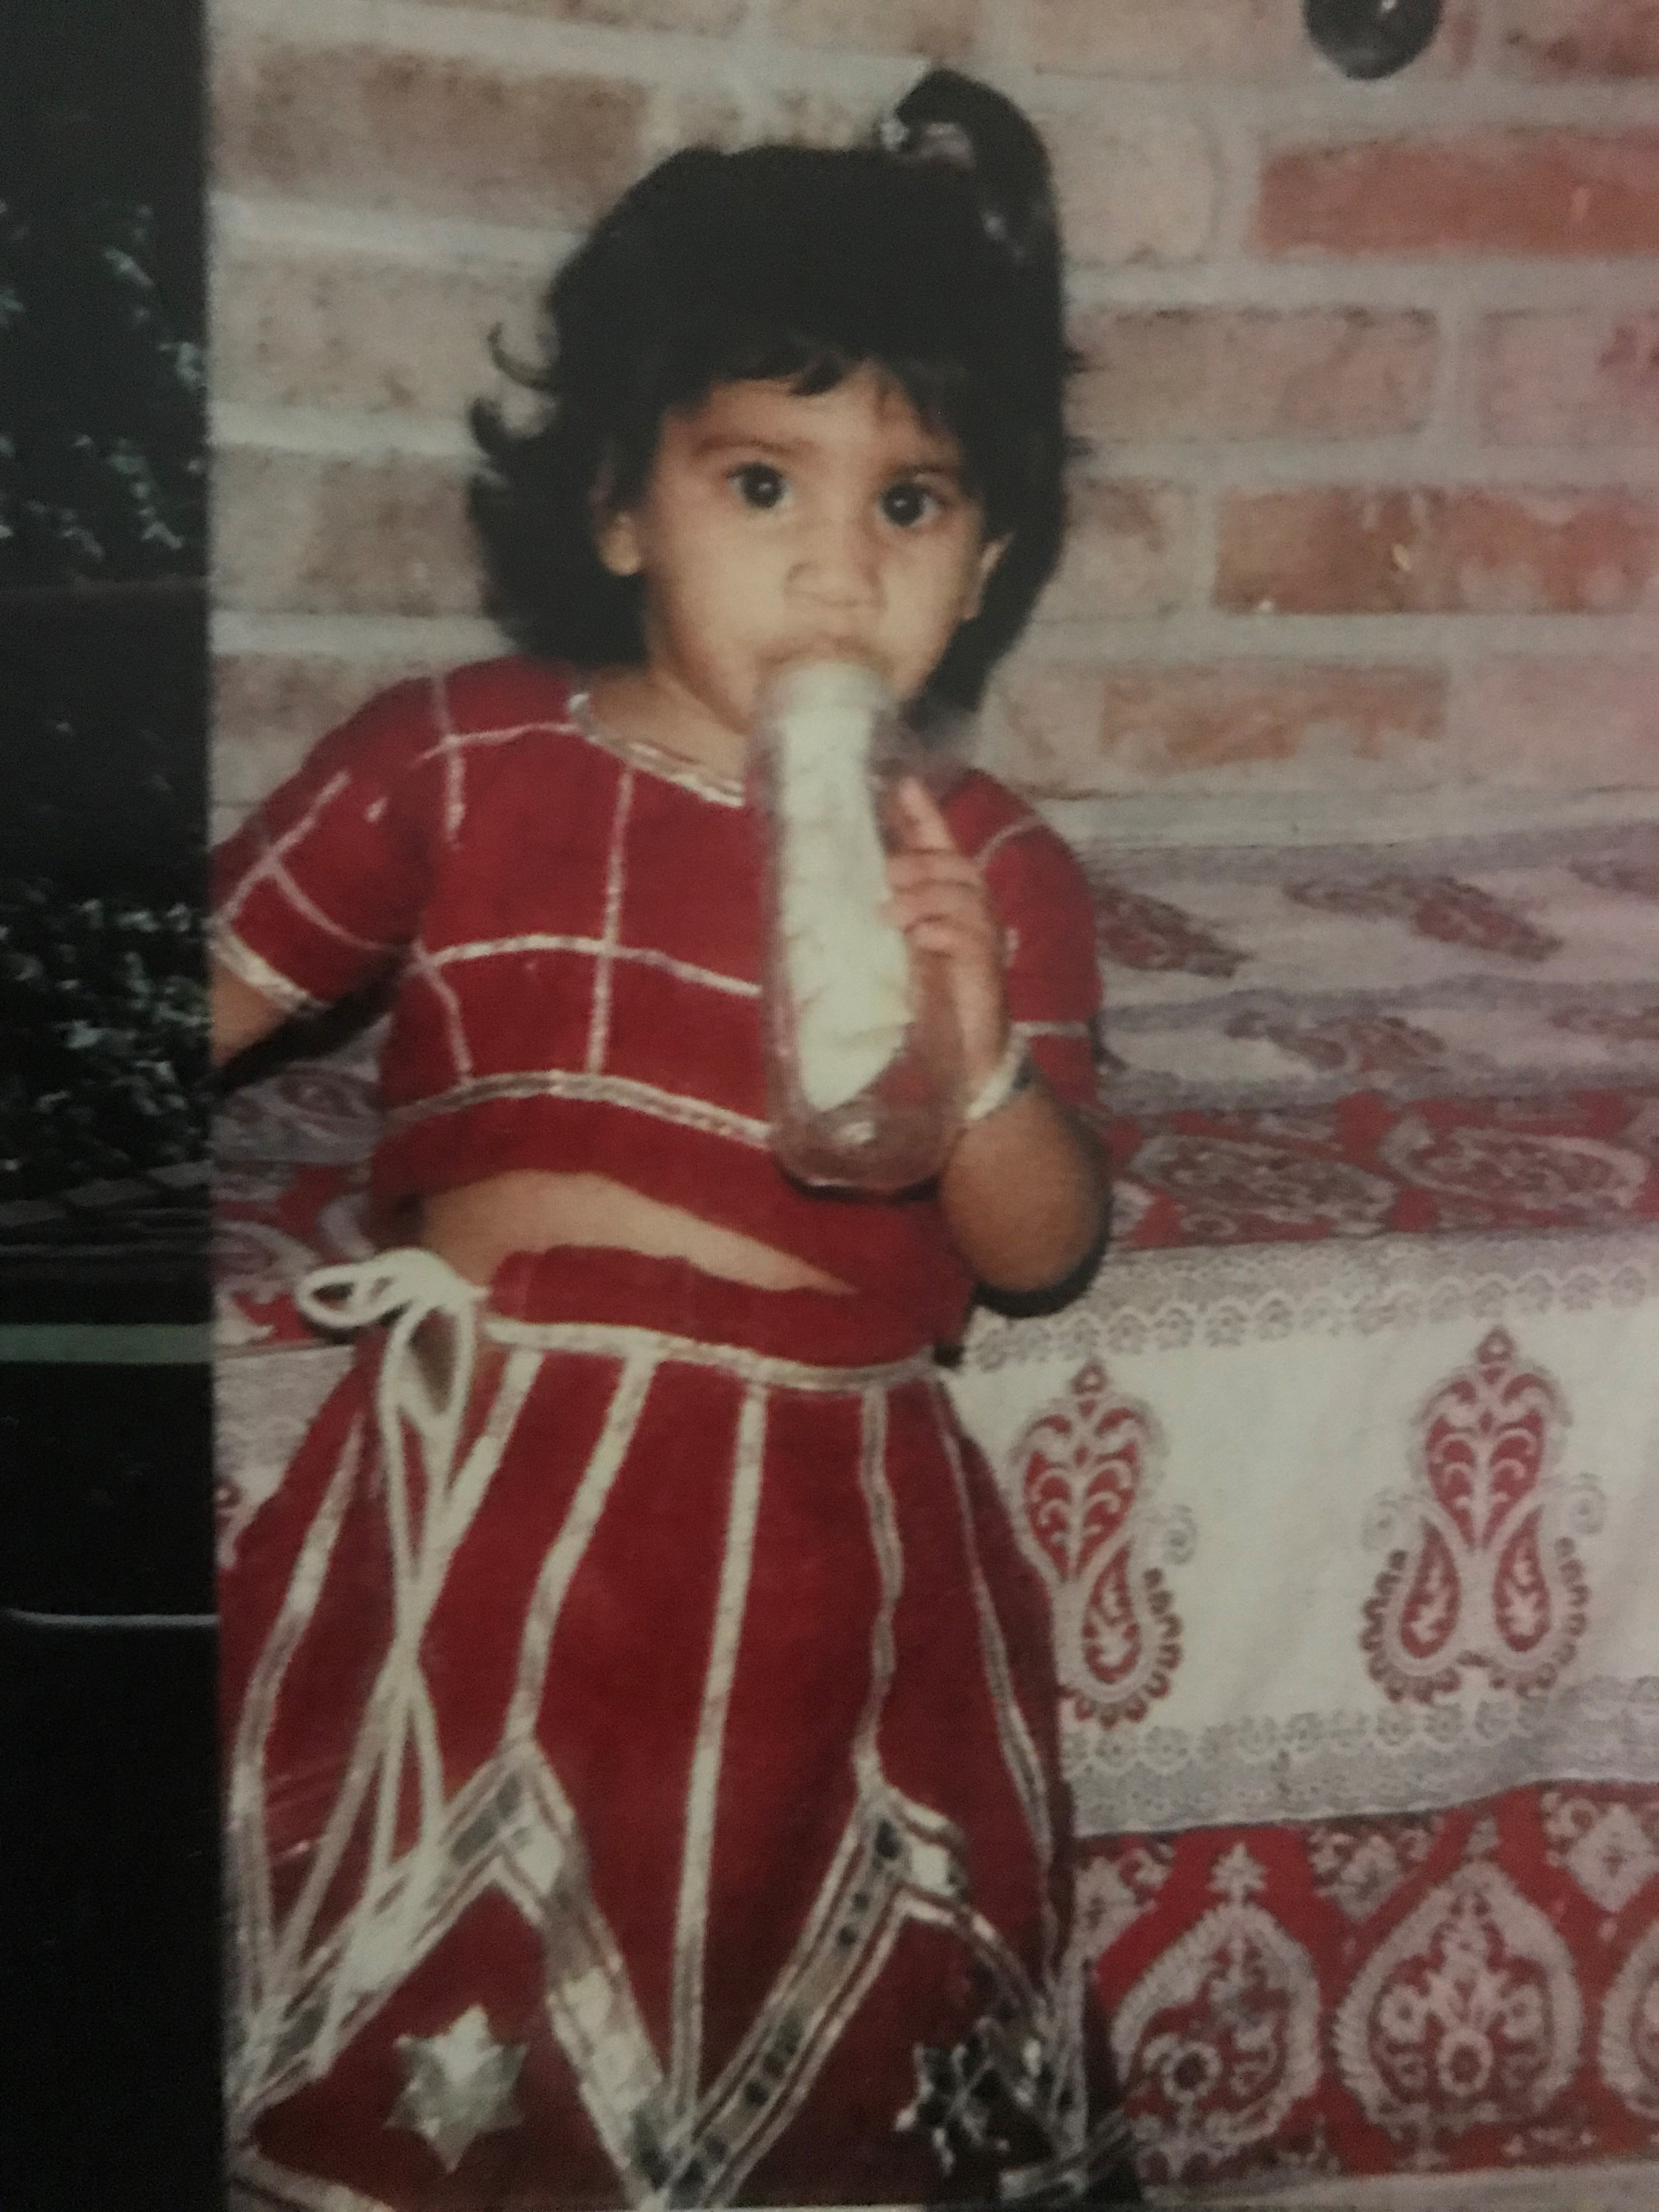 <div class='meta'><div class='origin-logo' data-origin='none'></div><span class='caption-text' data-credit=''>Pooja was always so fashionable, as documented in this photo from a trip to India as a very little girl. So cute!</span></div>